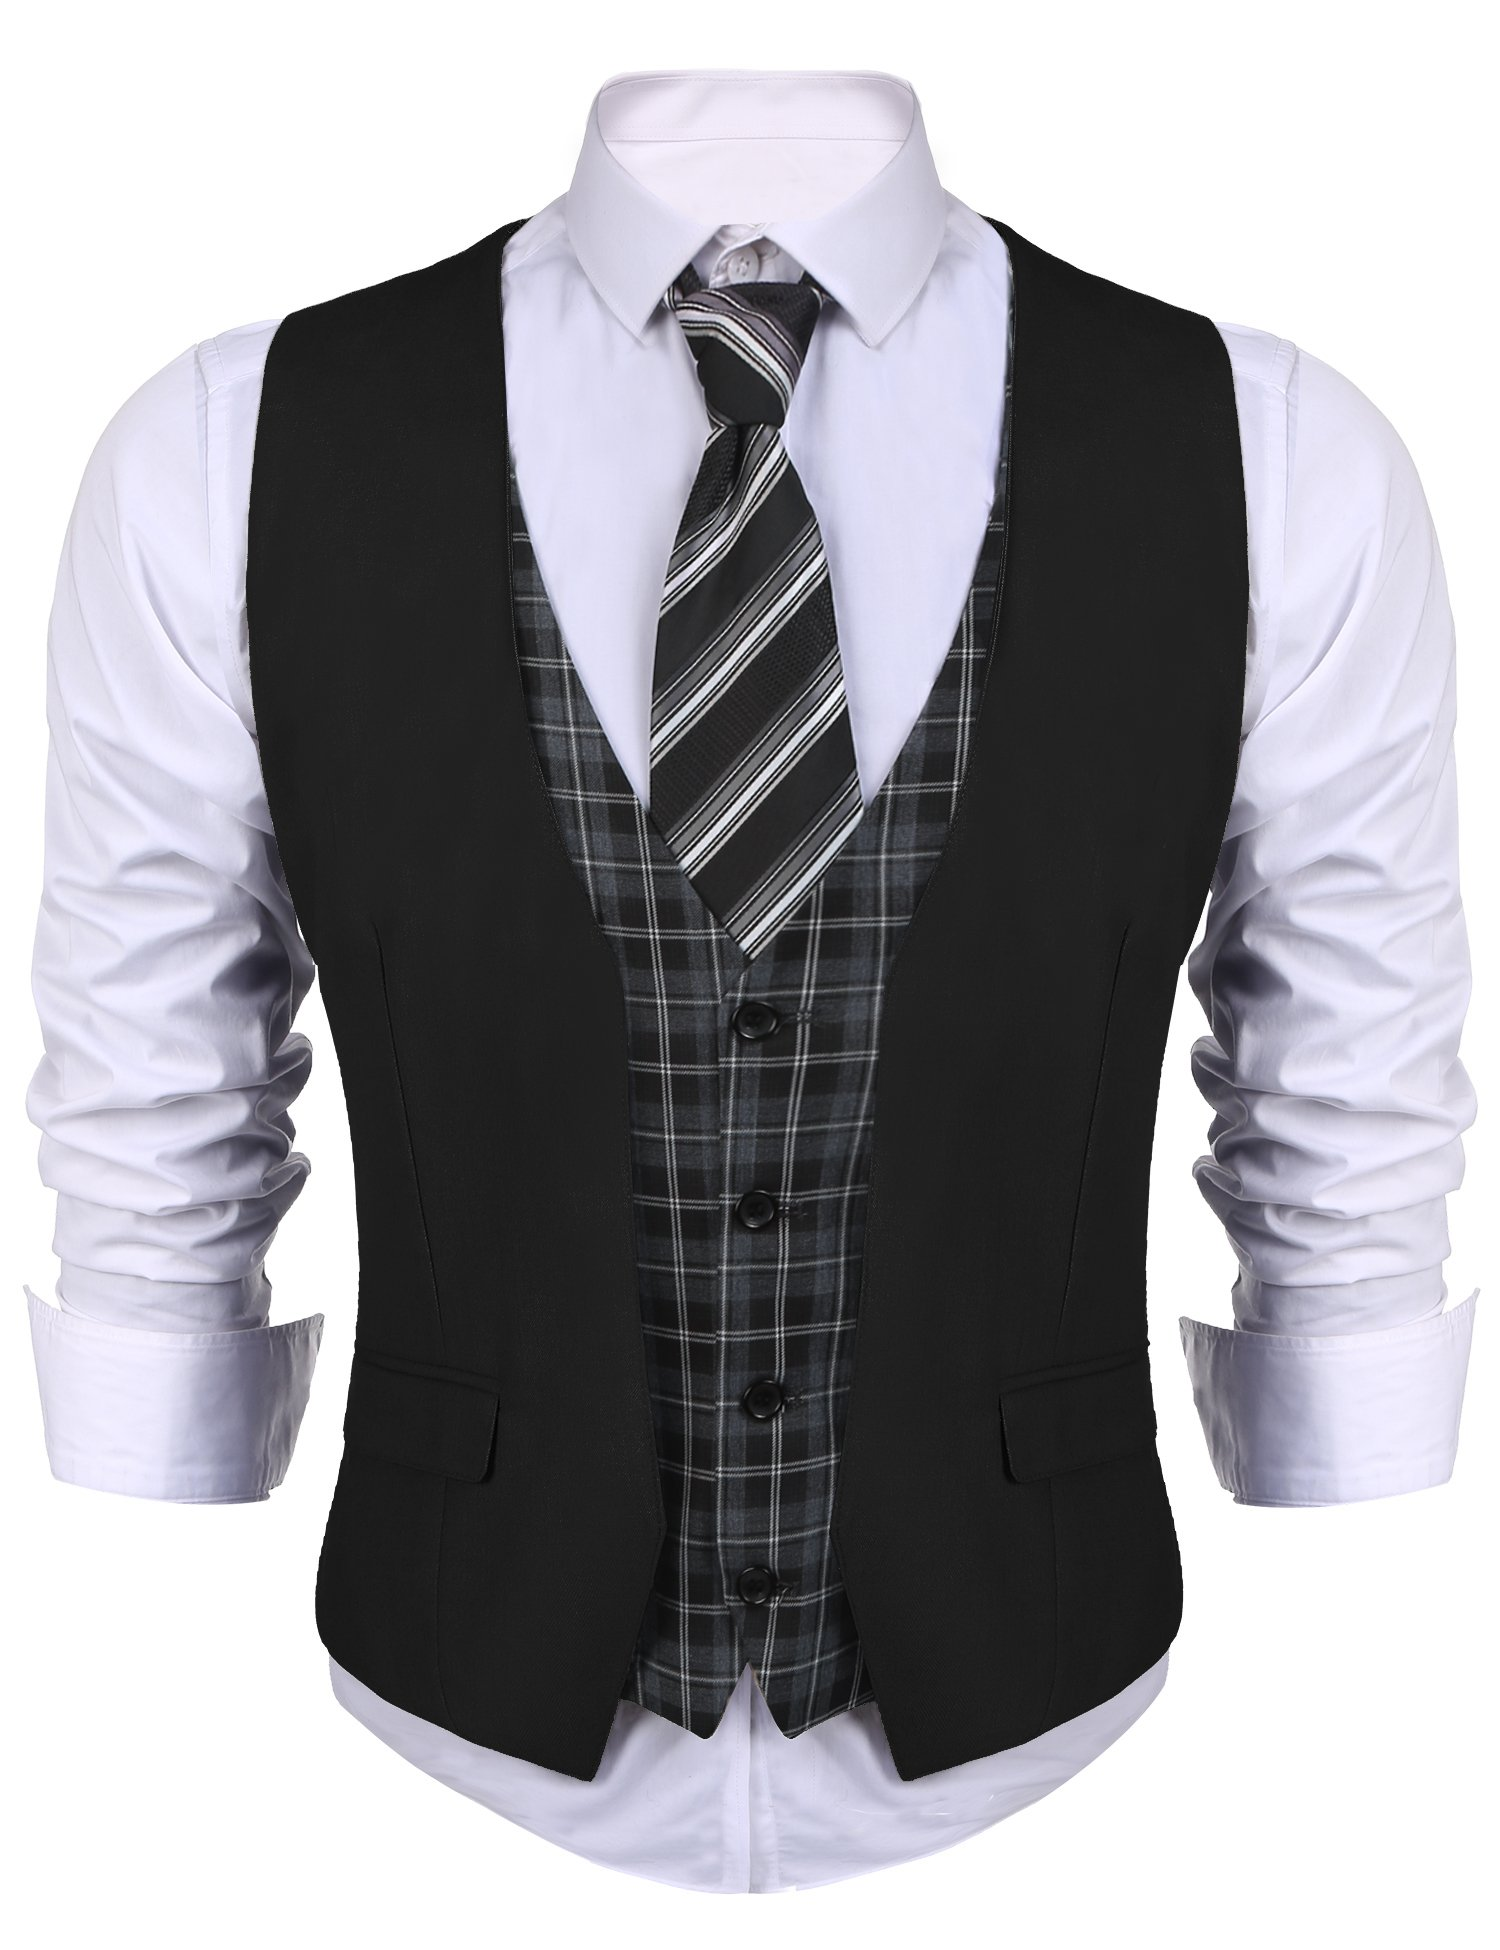 Coofandy Mens Sleeveless Casual Check Vest Fake Two Pieces Waistcouat, Black, Large